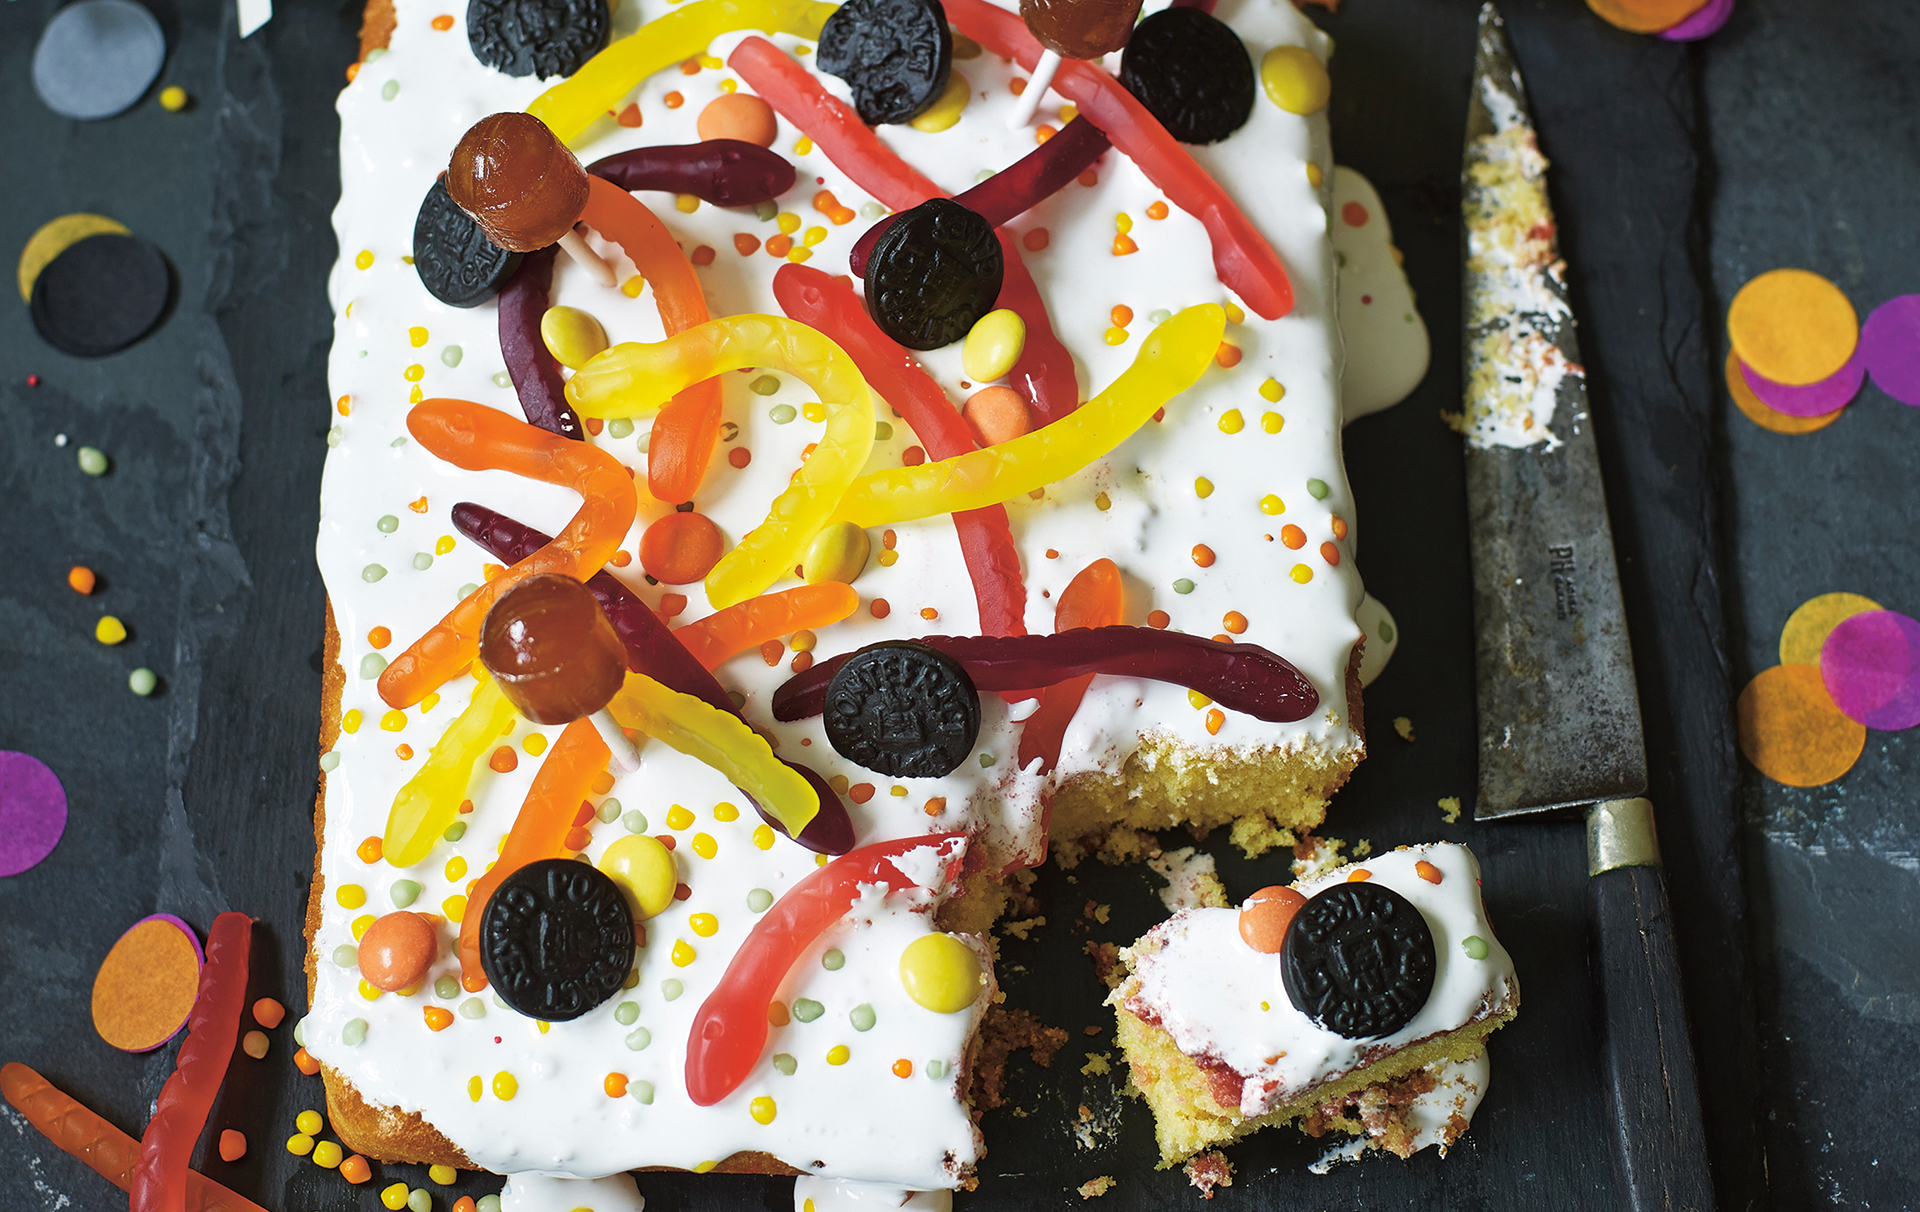 Give your little ones a spooky treat with this very fun Halloween traybake